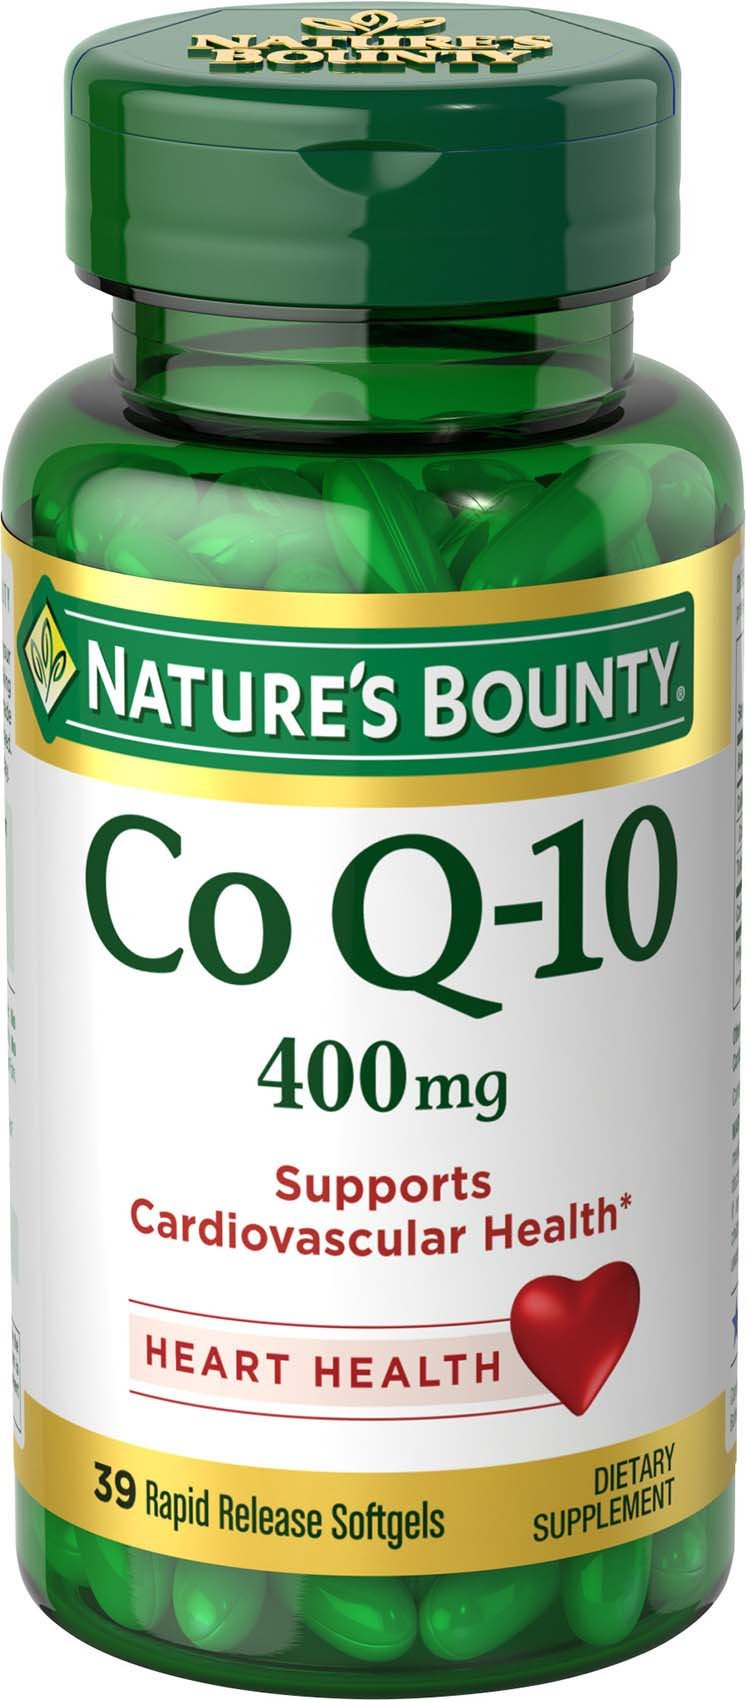 Nature's Bounty Cardio Q10, Co Q-10 400 mg Softgels 39 ea by Nature's Bounty (Image #1)